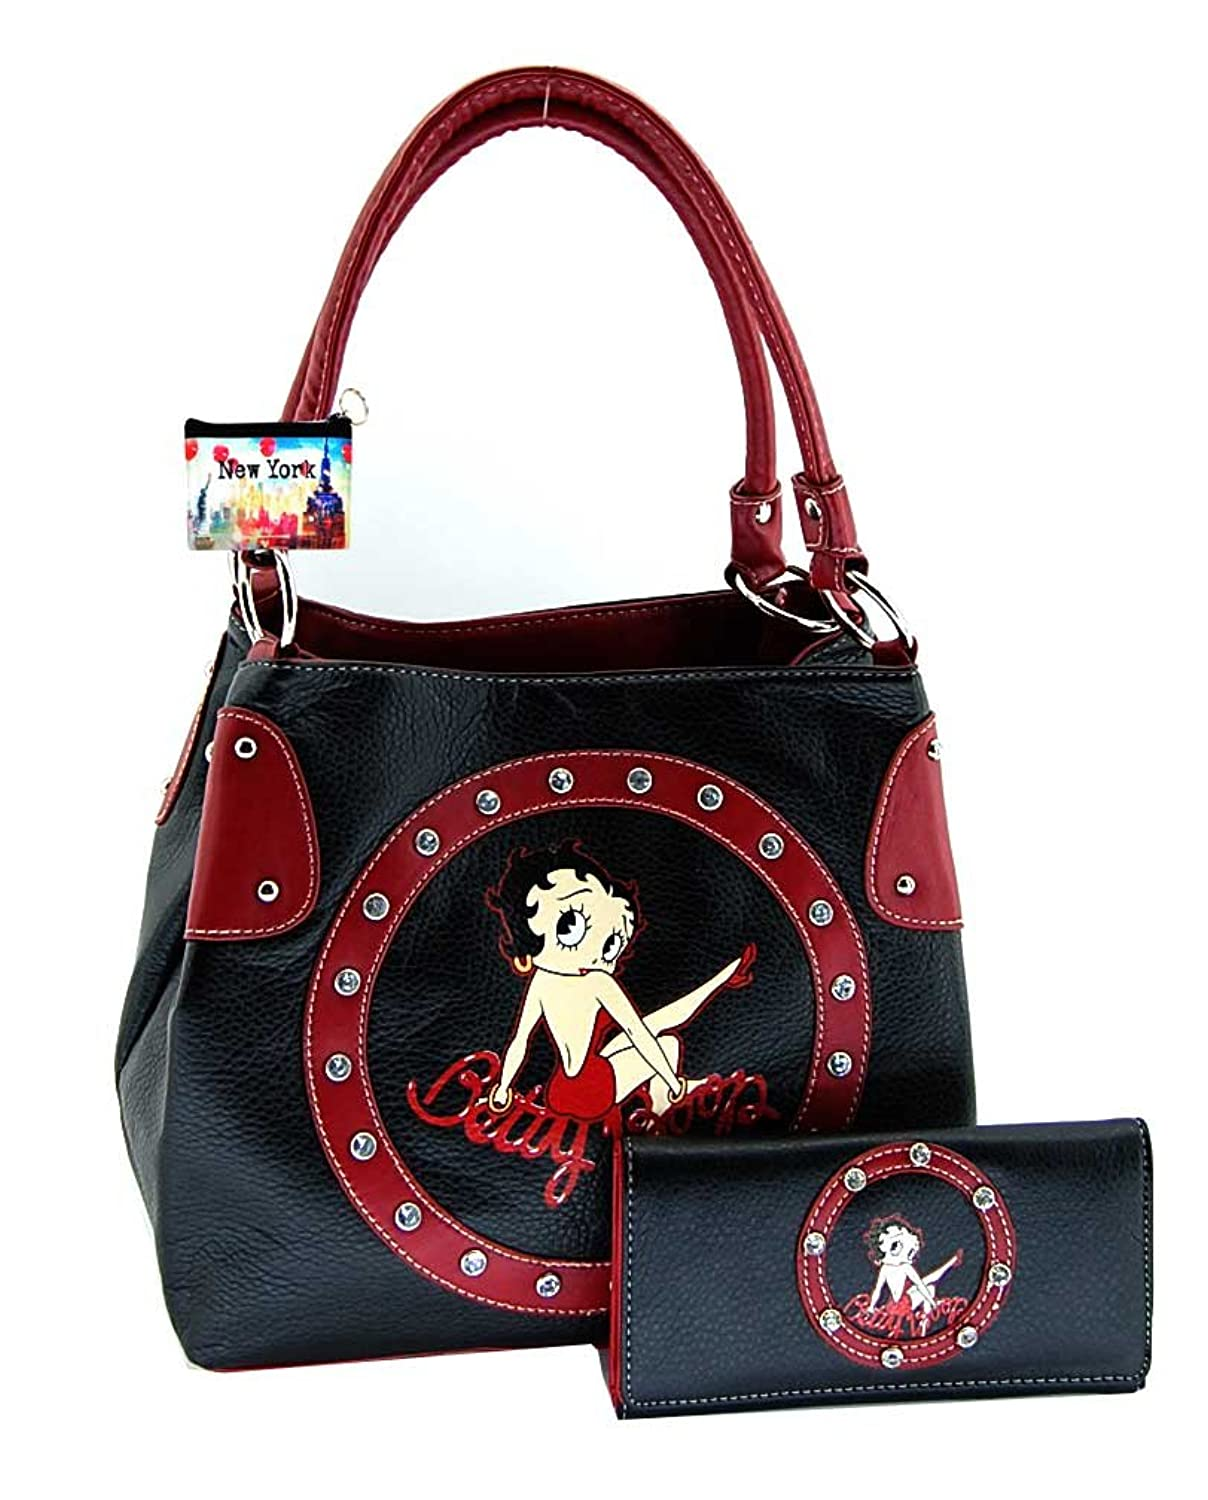 Betty Boop Purse and Wallet Set, BP10130A, Black with Rhinestones